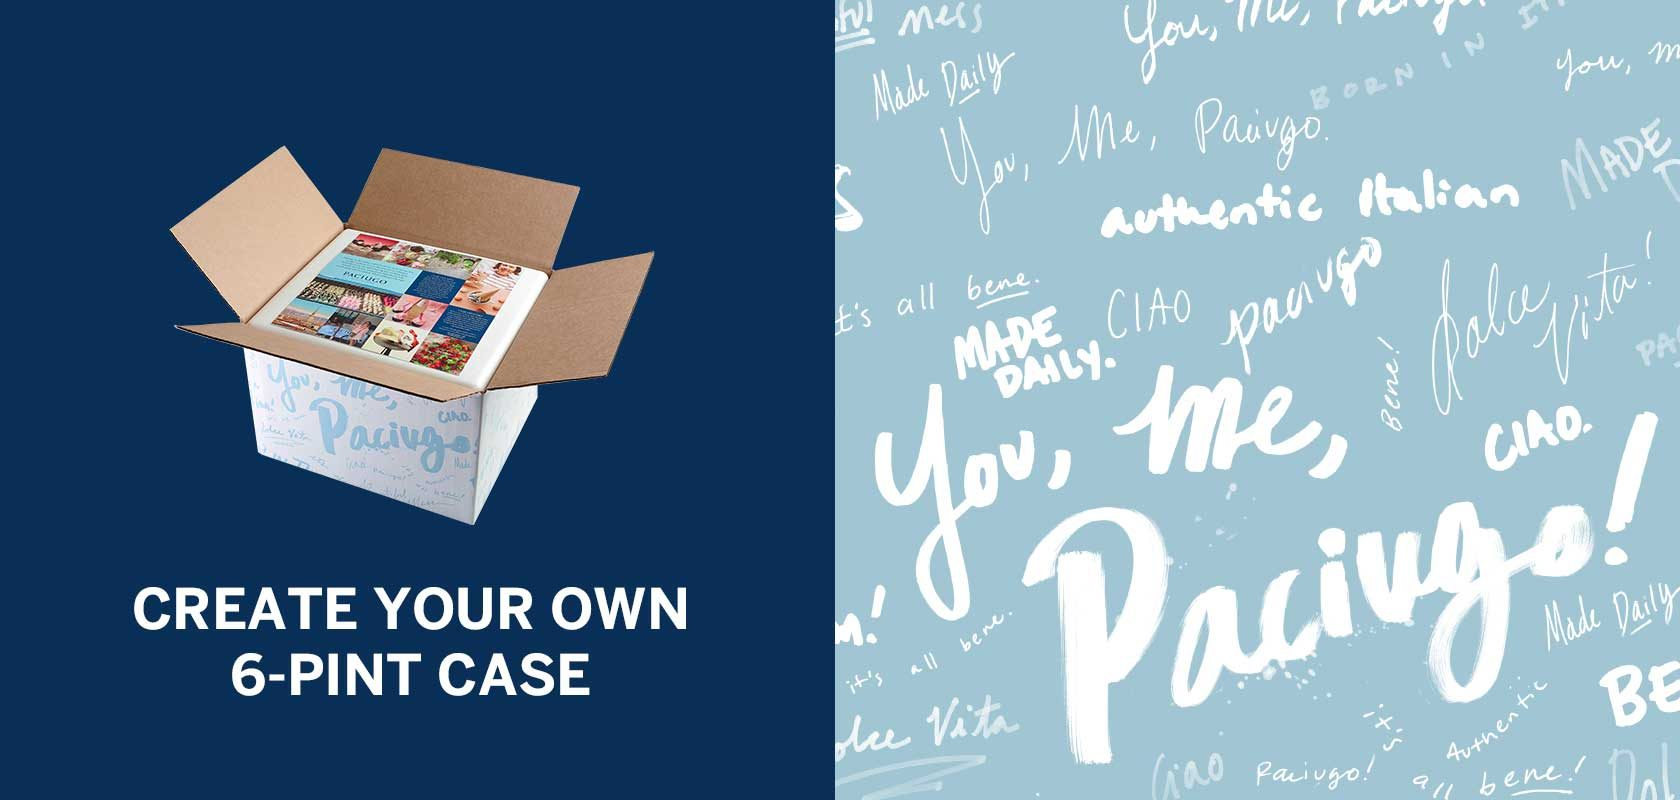 Create Your Own 6-Pints Case